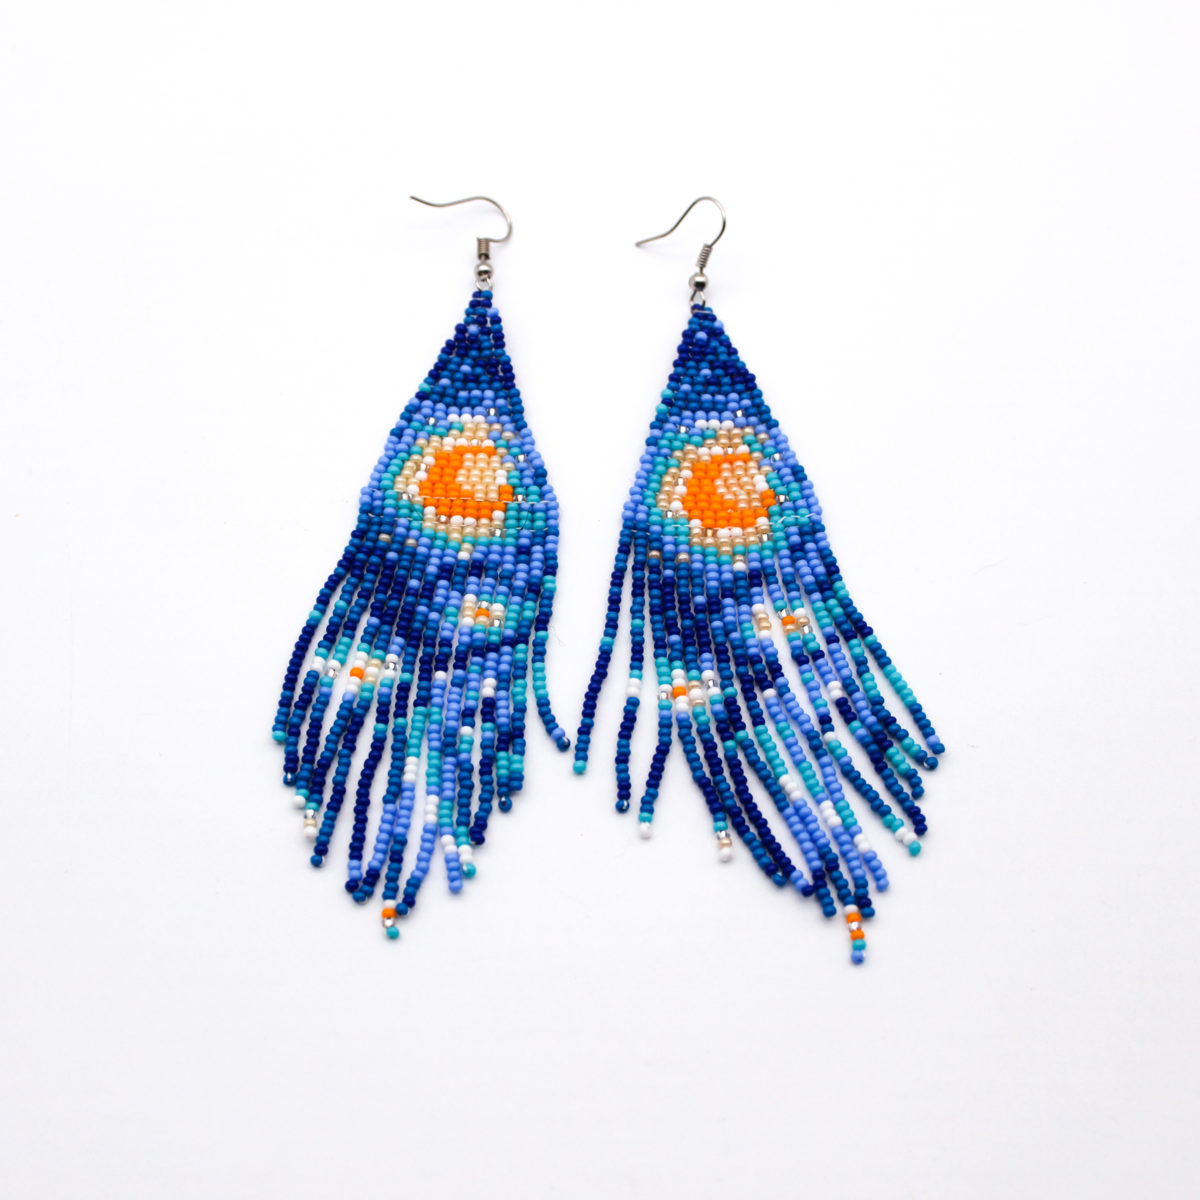 starry-night-earrings